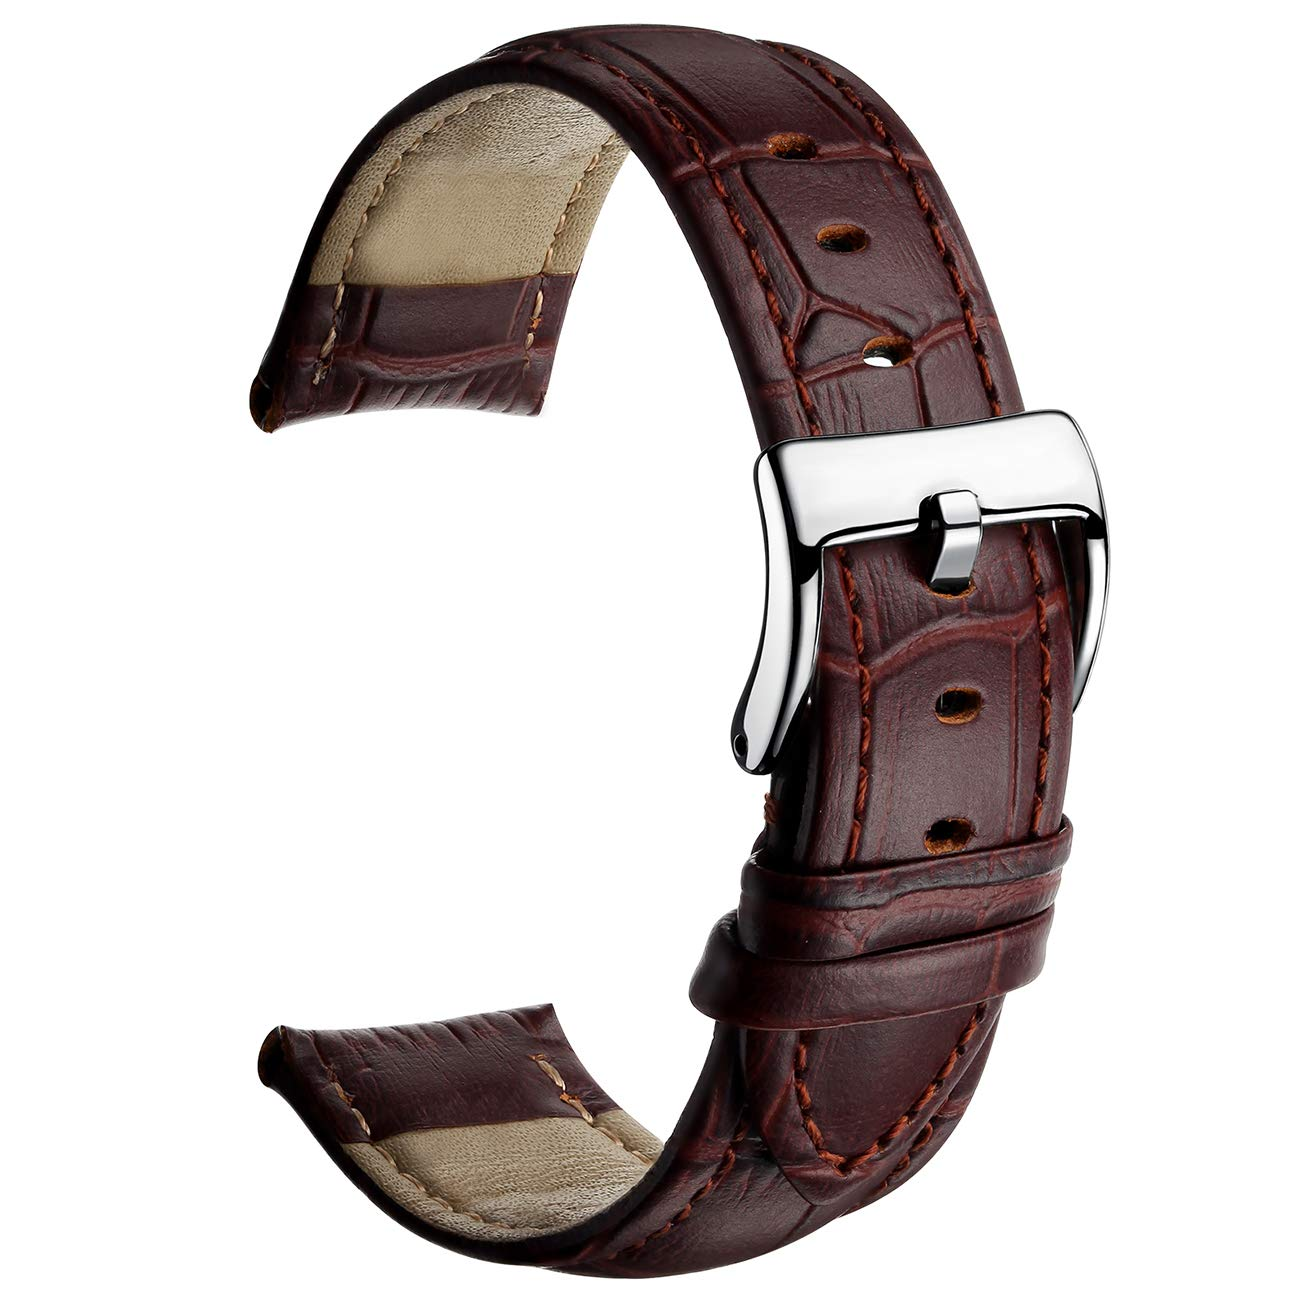 Leather Watch Band Top Grain Genuine Leather Watch Strap 16mm 18mm 20mm 22mm Premium Leather Watch Bands for Men and Women with Solid Stainless Steel Pin Buckle